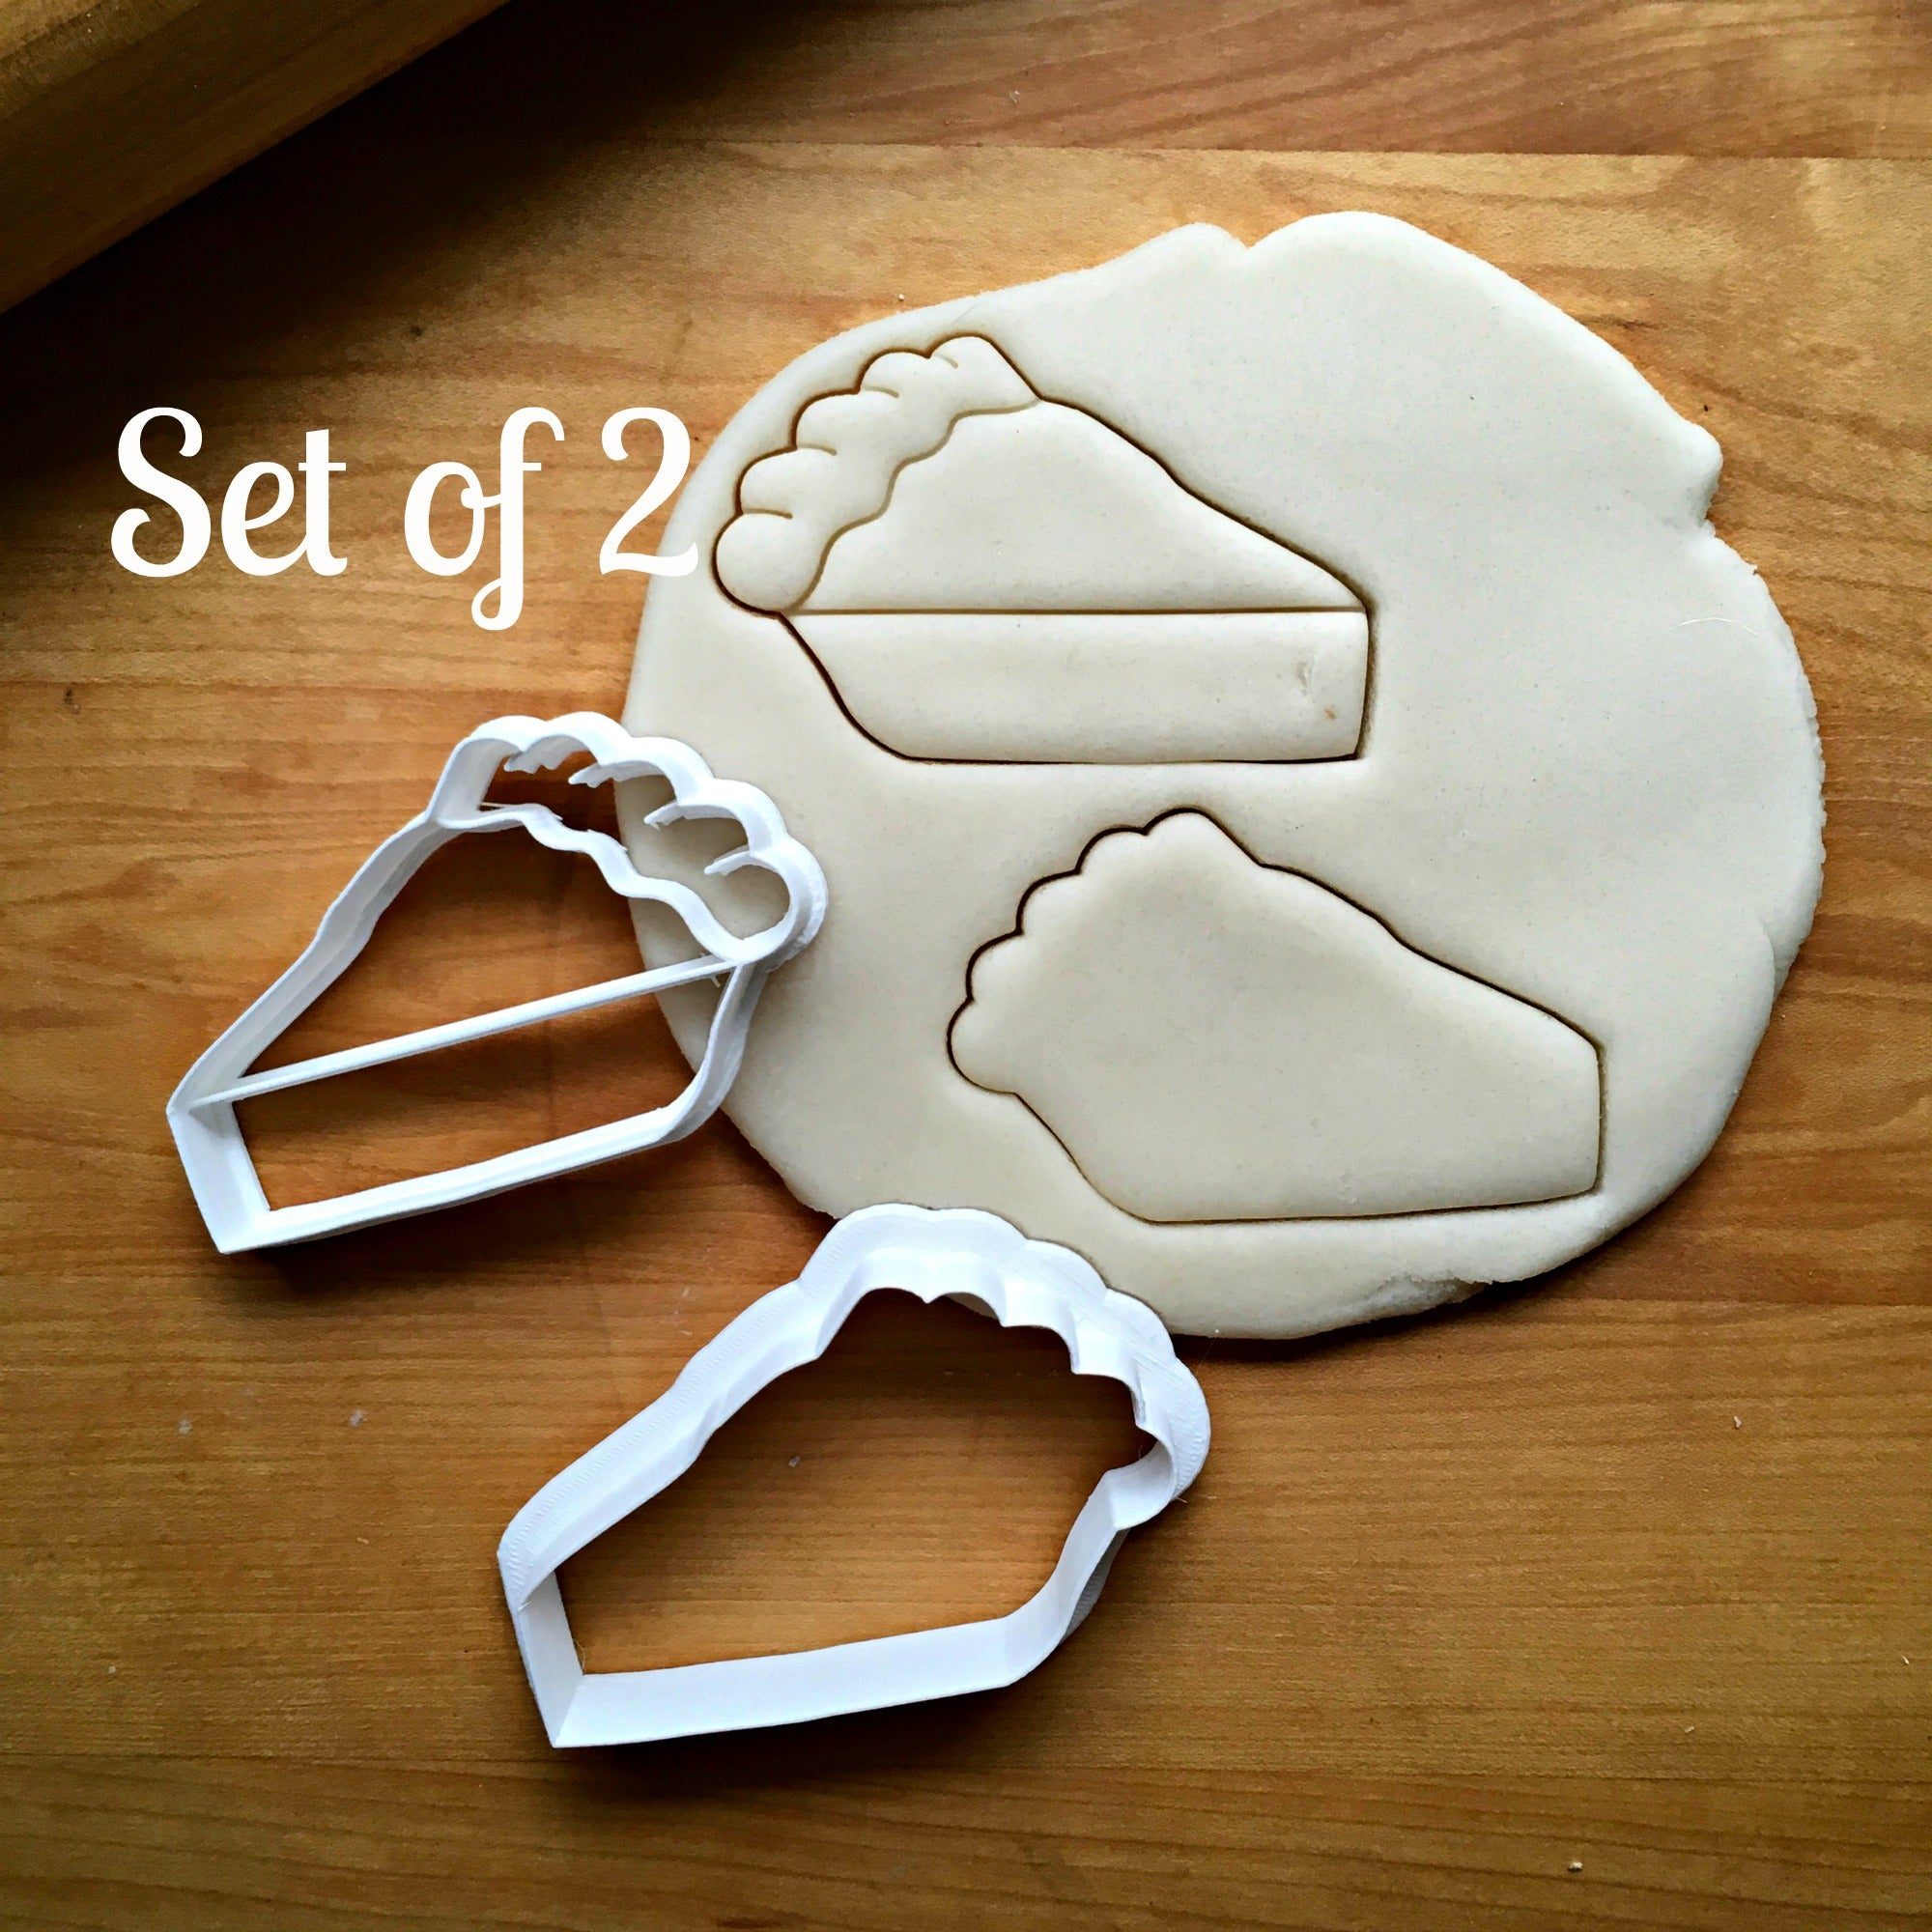 Set of 2 Slice of Pie Cookie Cutters/Dishwasher Safe